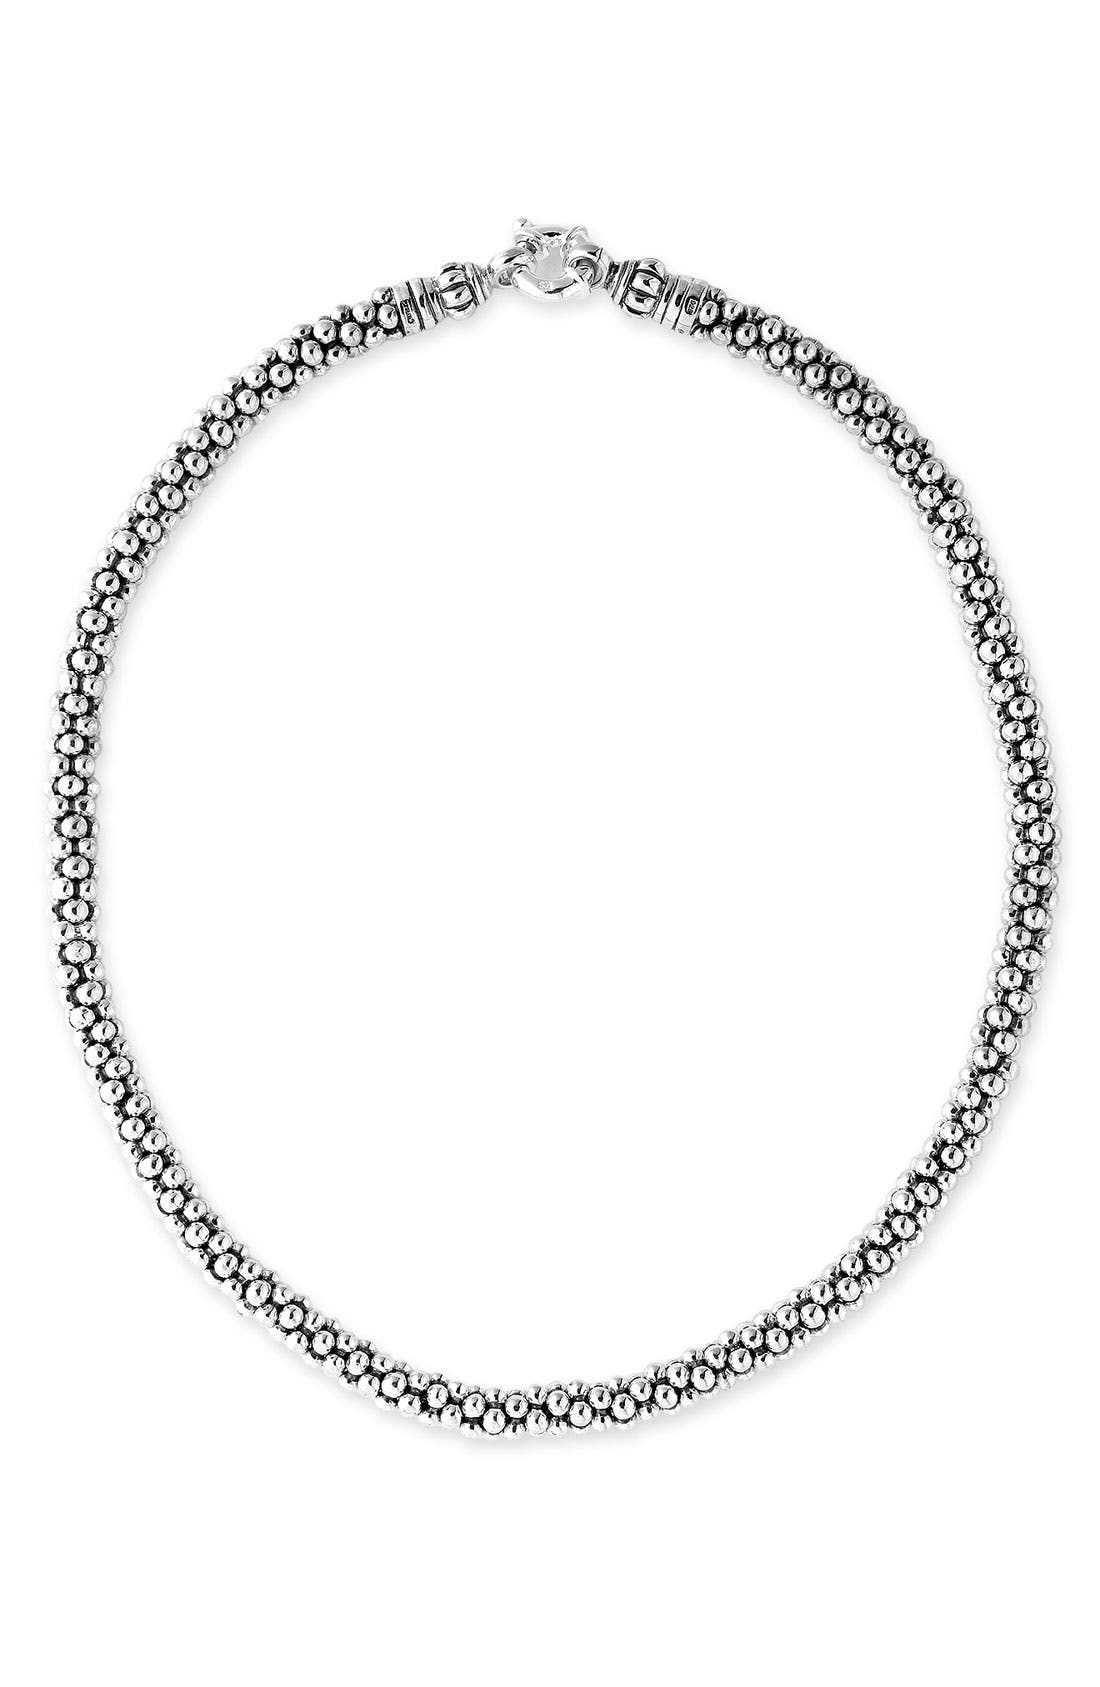 Alternate Image 1 Selected - LAGOS Sterling Silver Caviar 7mm Rope Necklace